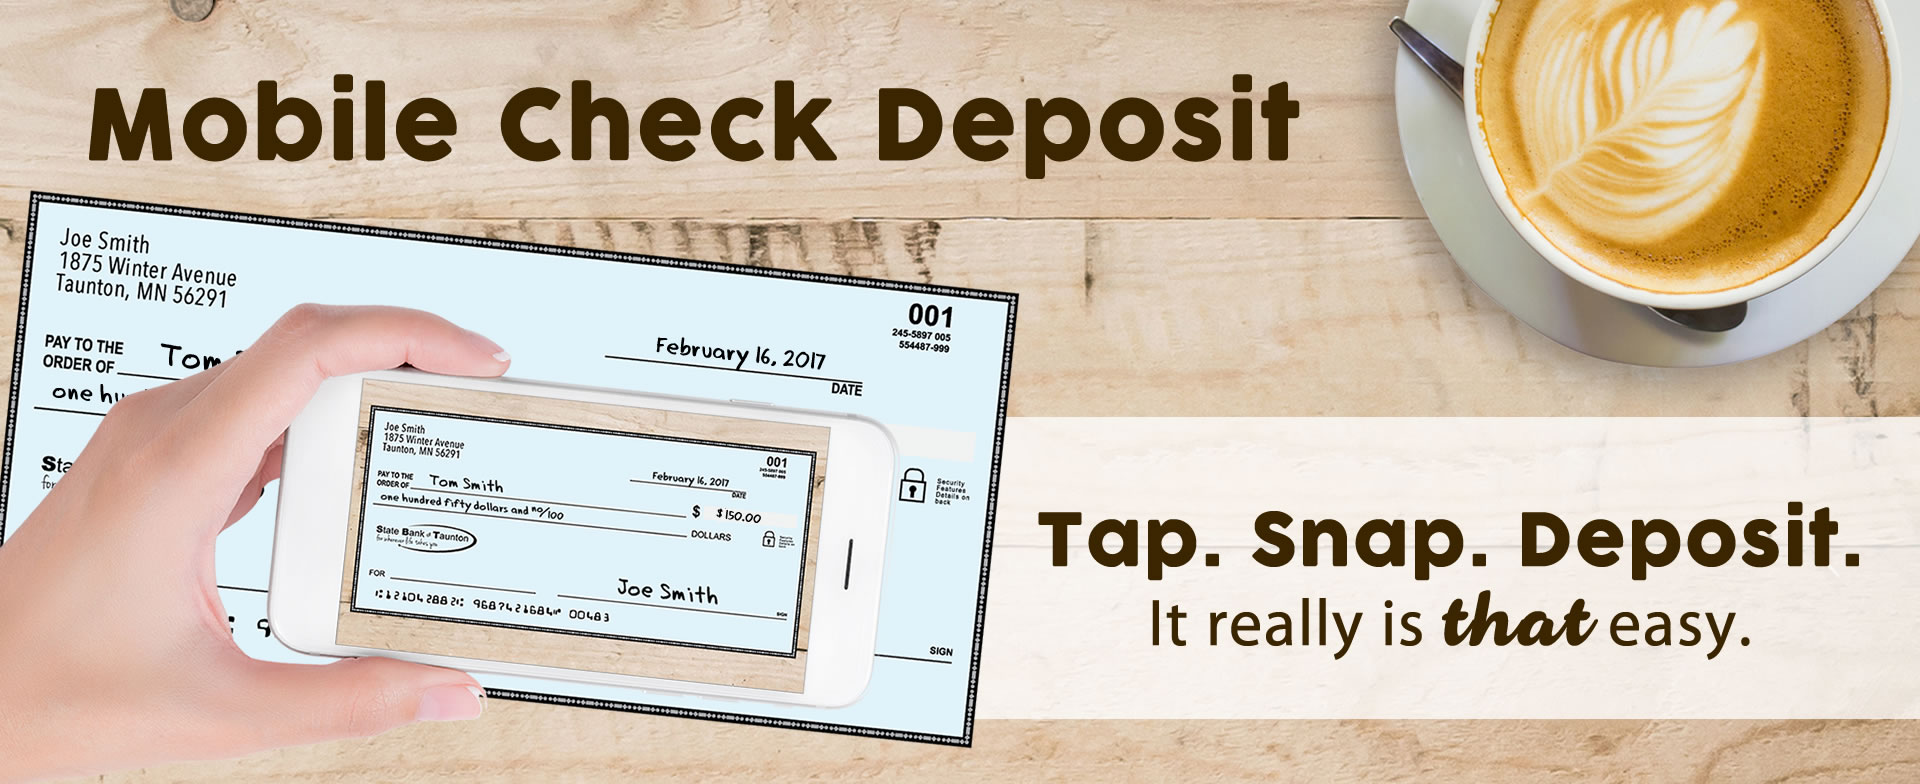 Mobile Check Deposit: Tap. Snap. Deposit. It's really that easy with the State Bank of Taunton mobile app.